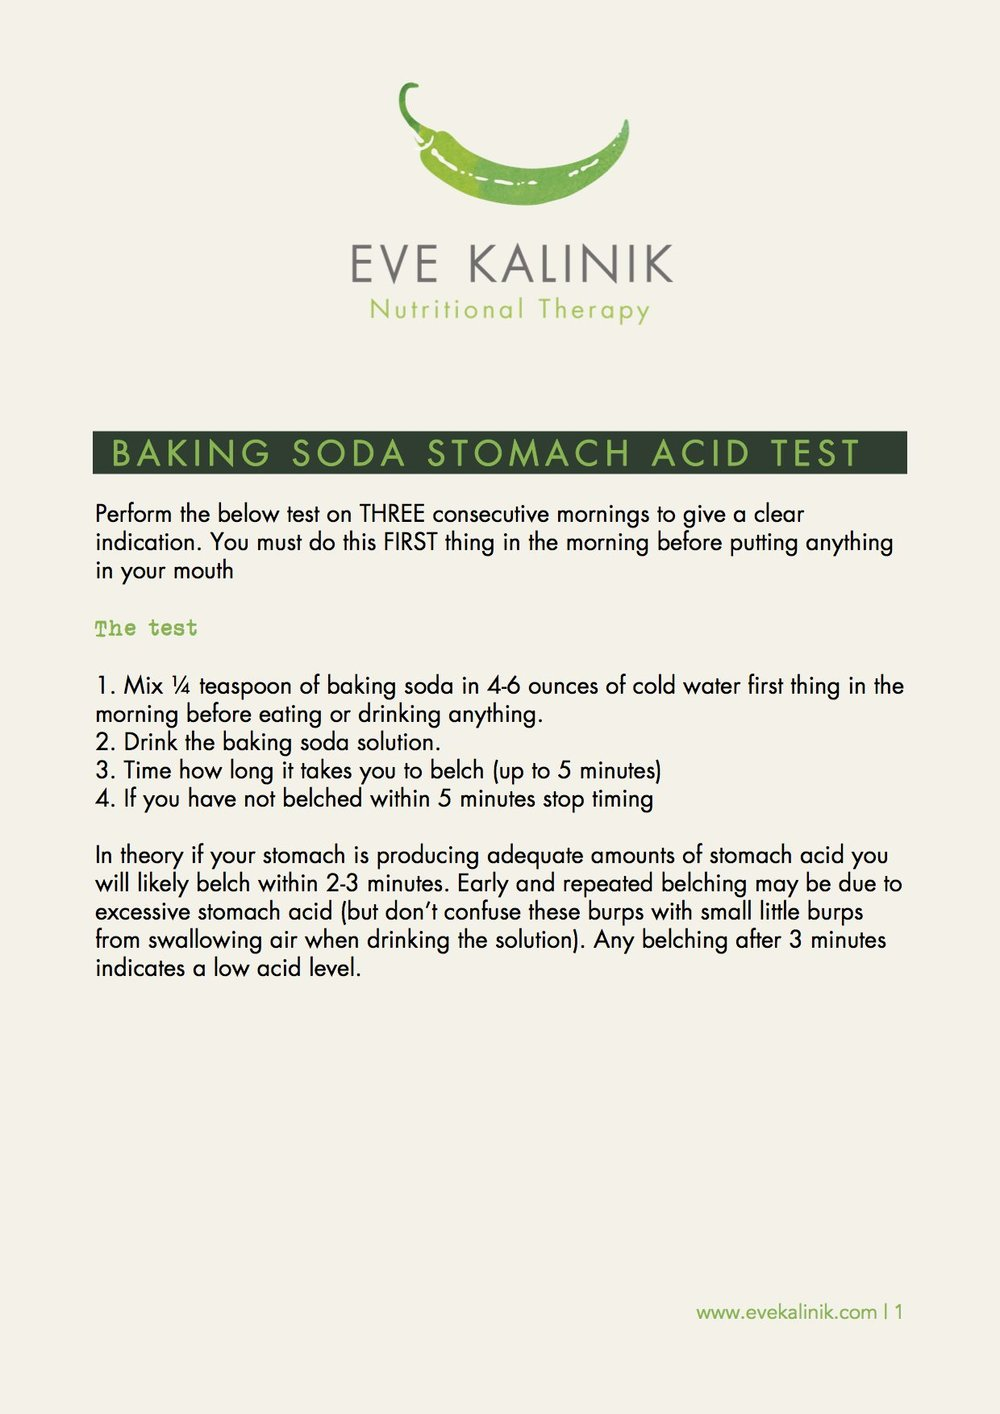 Baking-soda-stomach-acid-test-e1497957438893.jpg